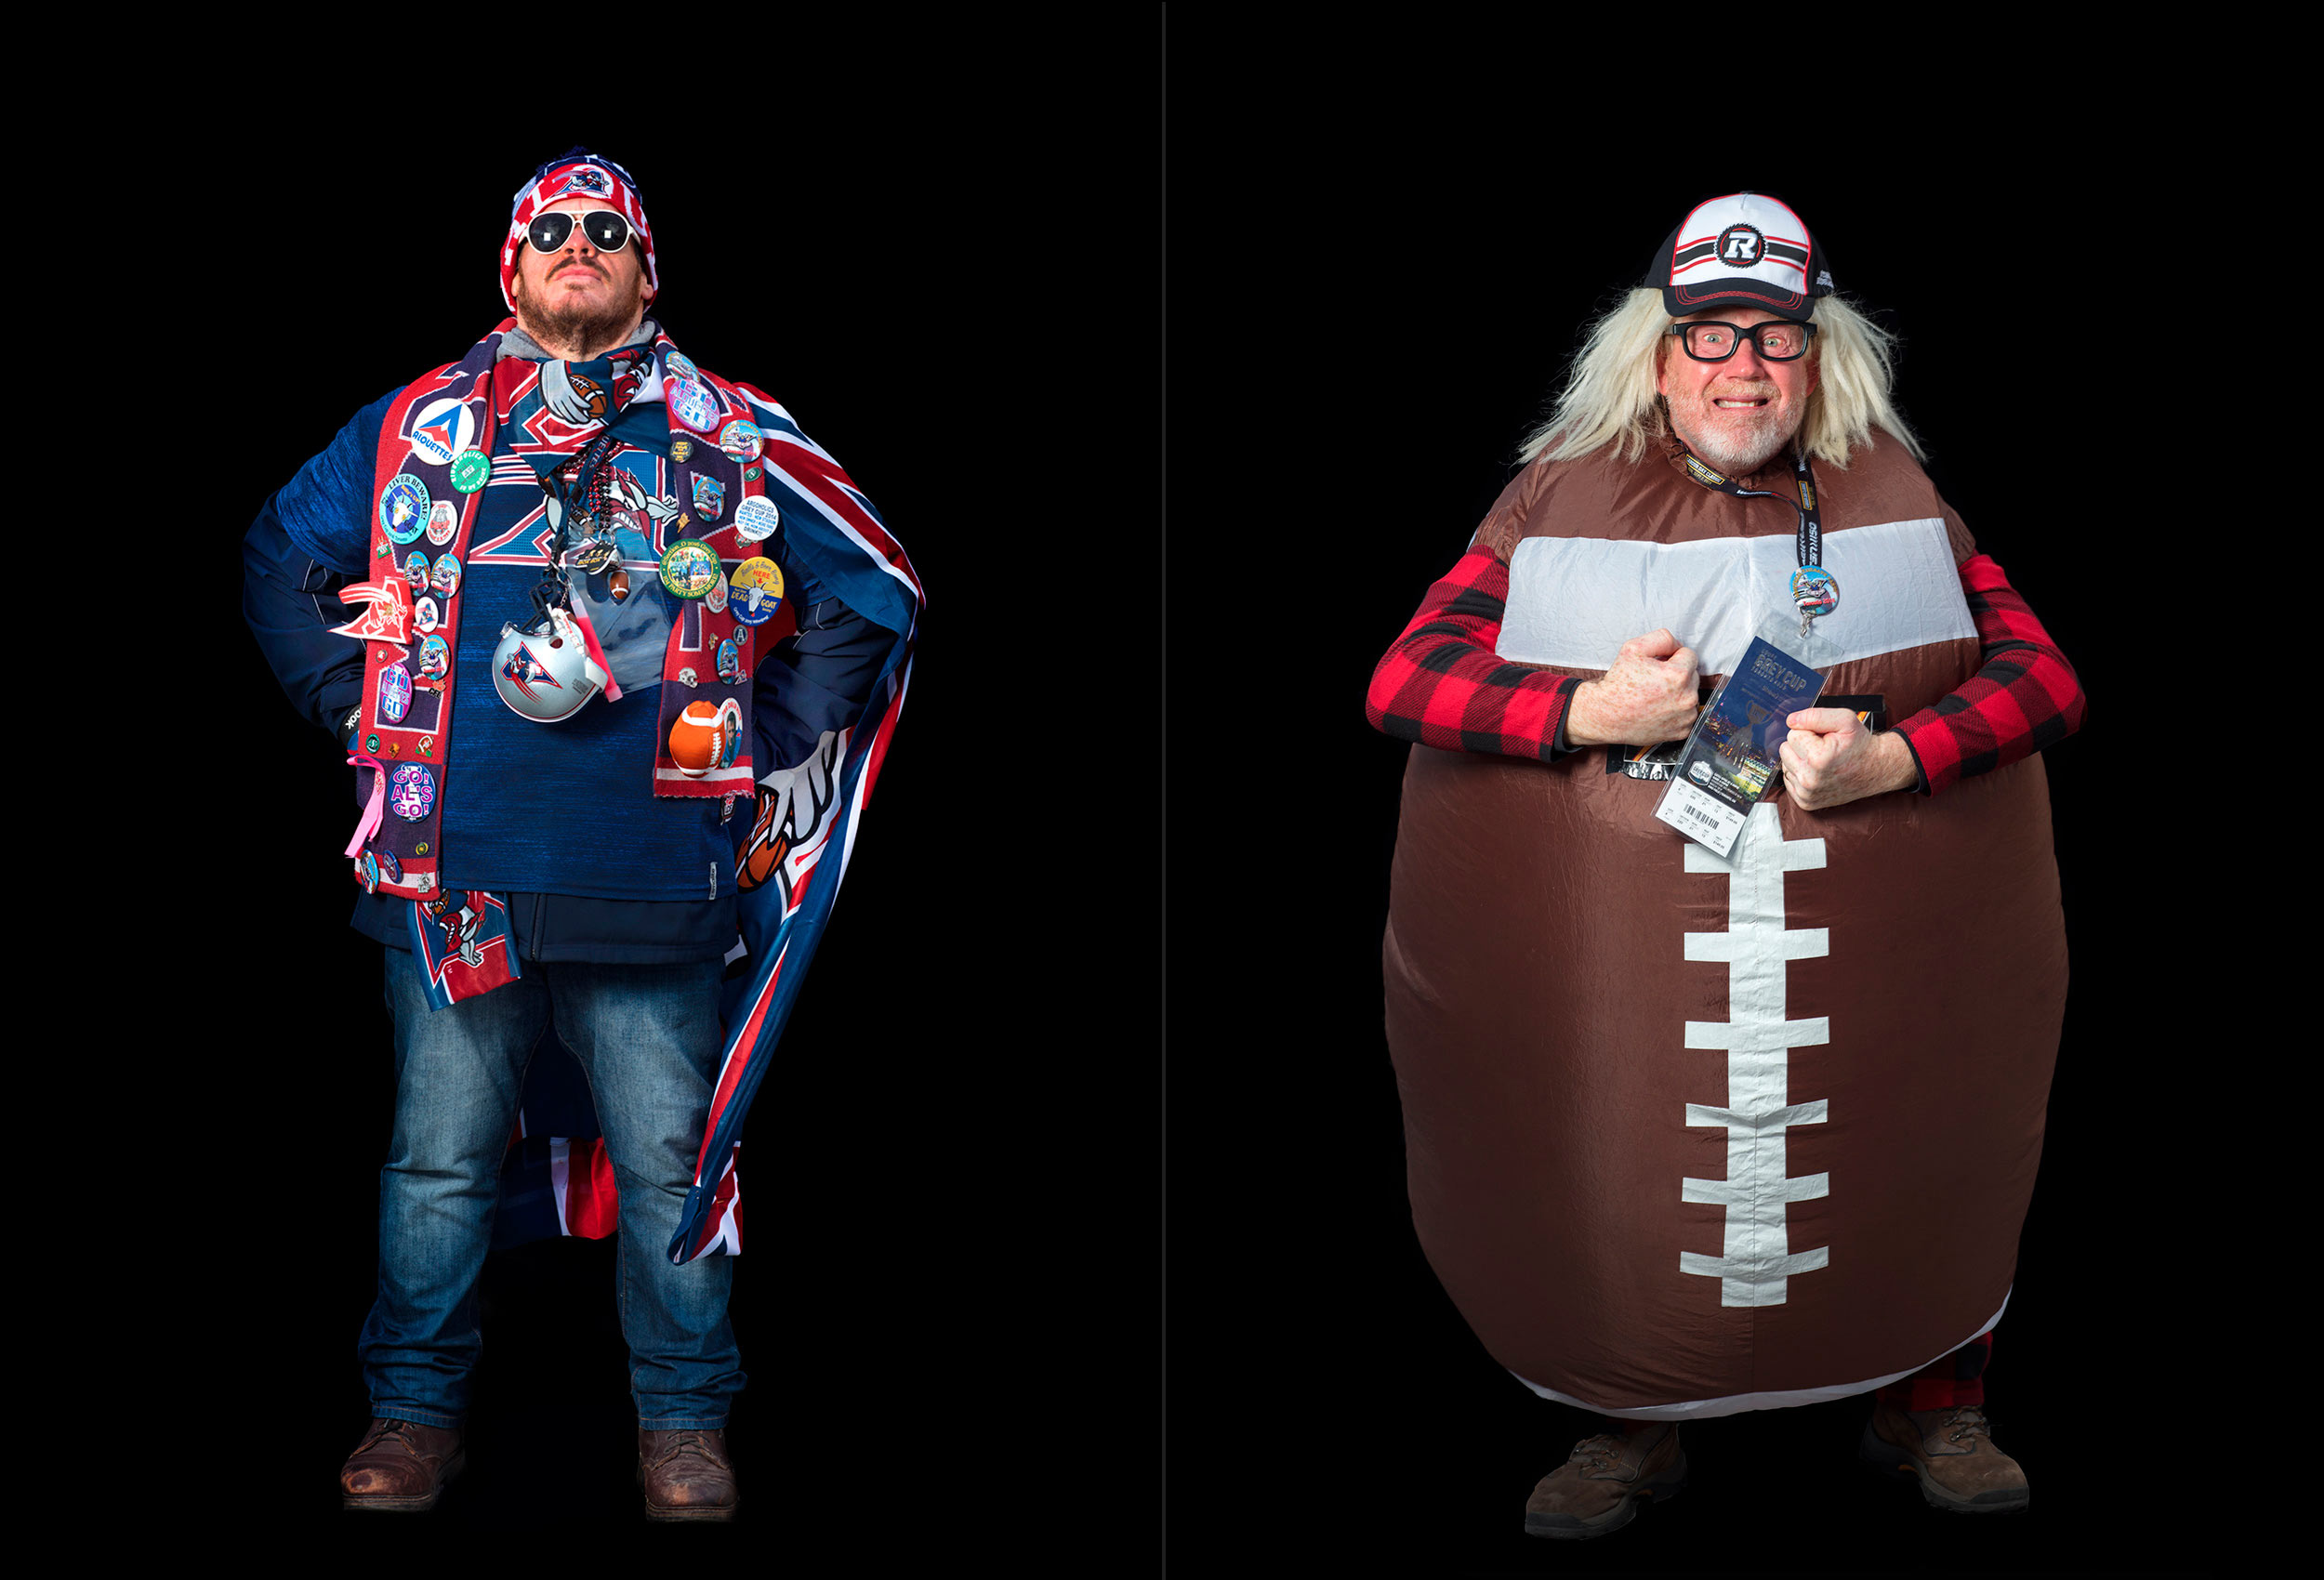 unique photos of cfl superfans taken in toronto during the grey cup